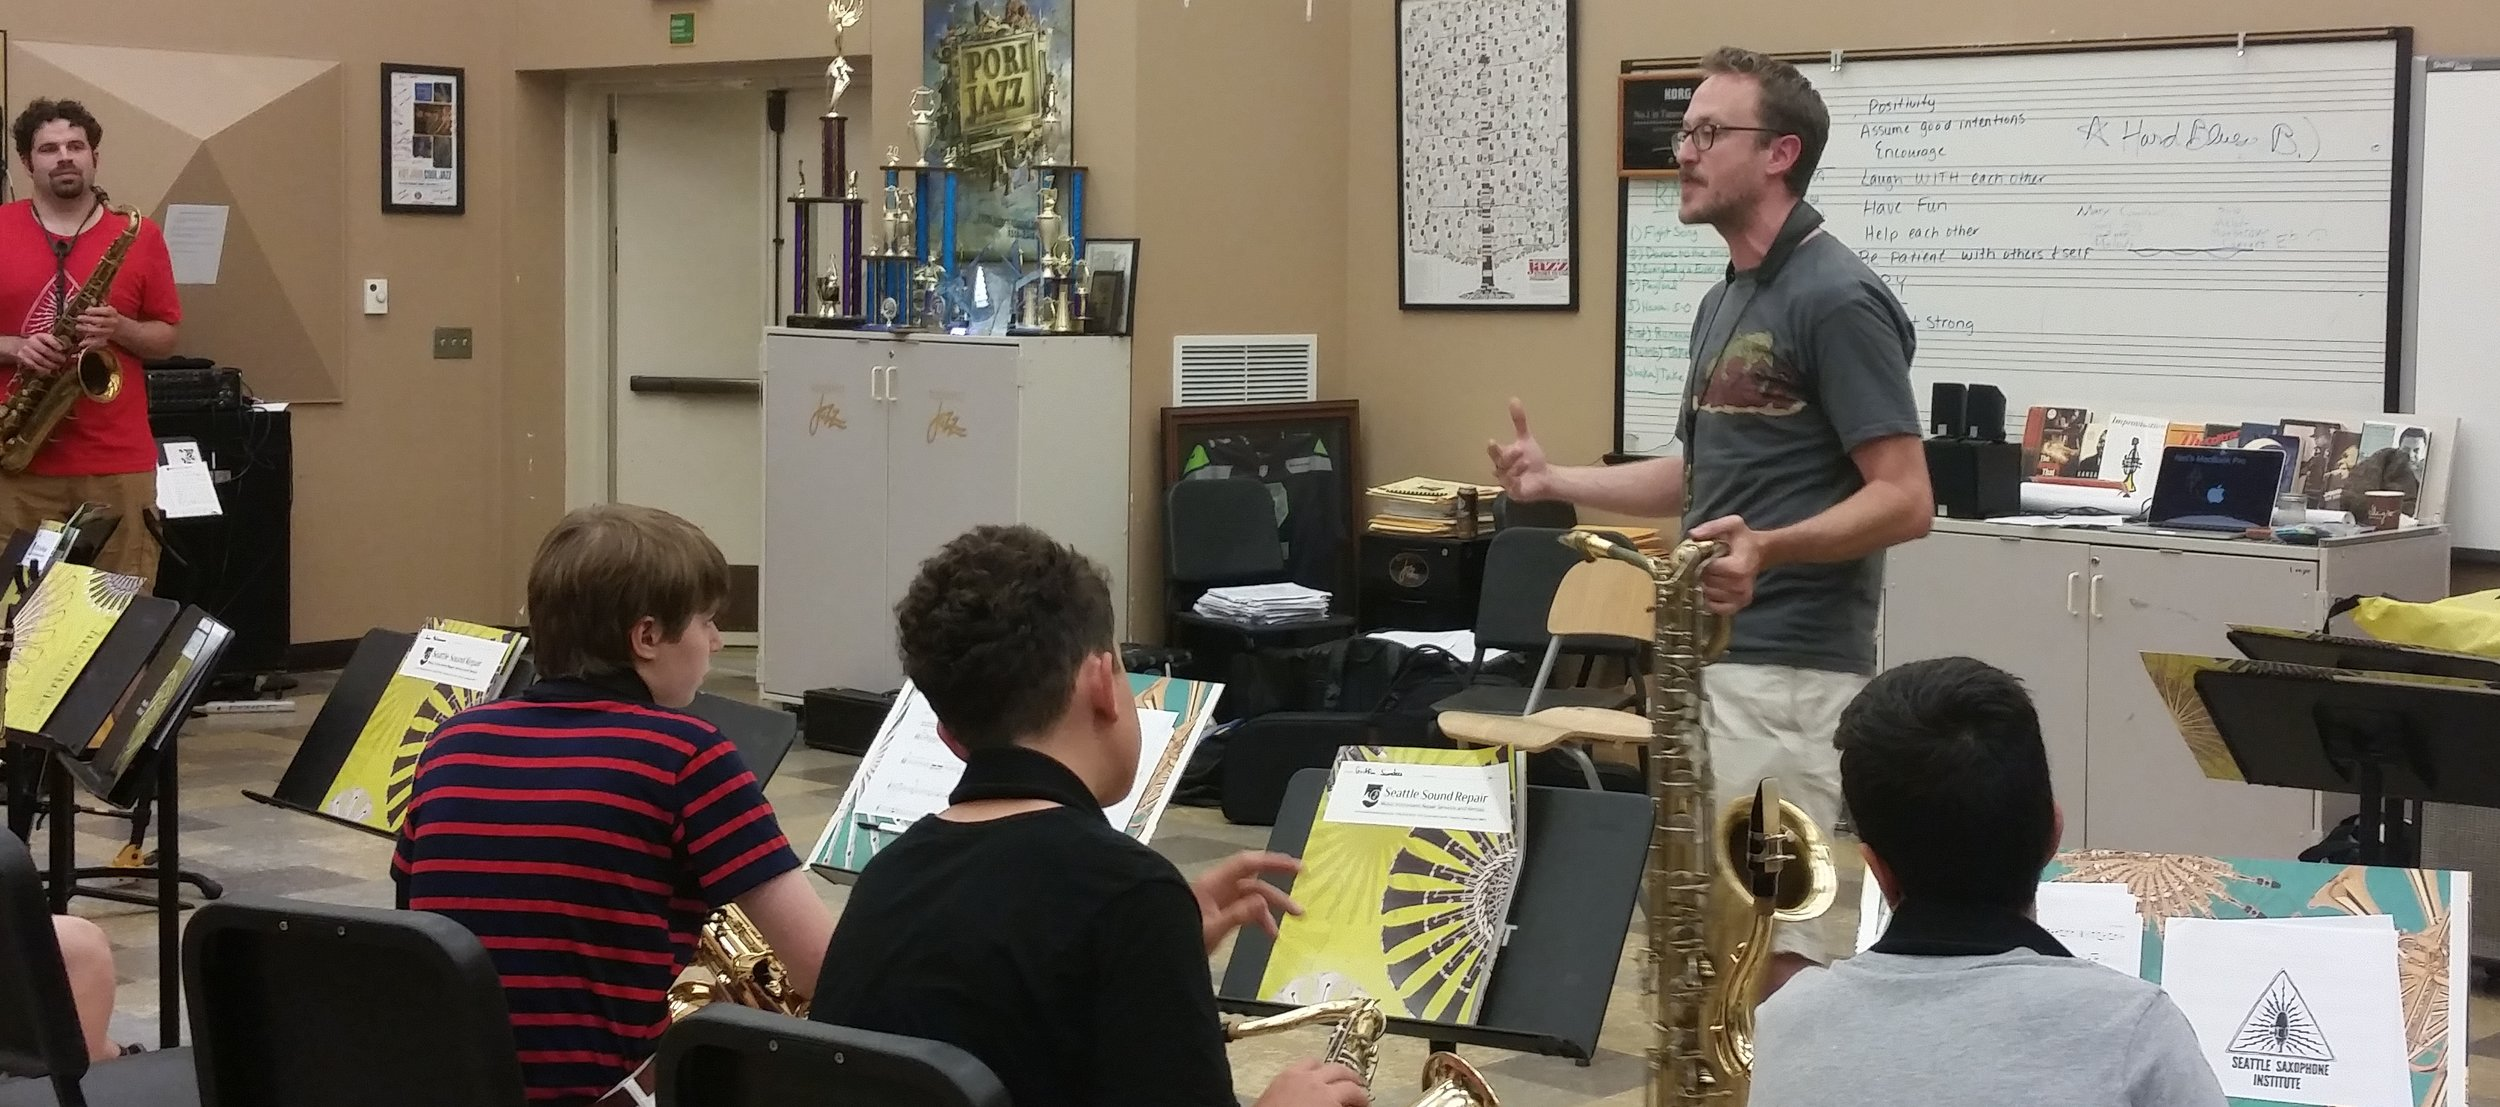 Guest artists Peter Daniel teaches students about traditional brass-band music at the High School camp while coach Steve Treseler looks on.